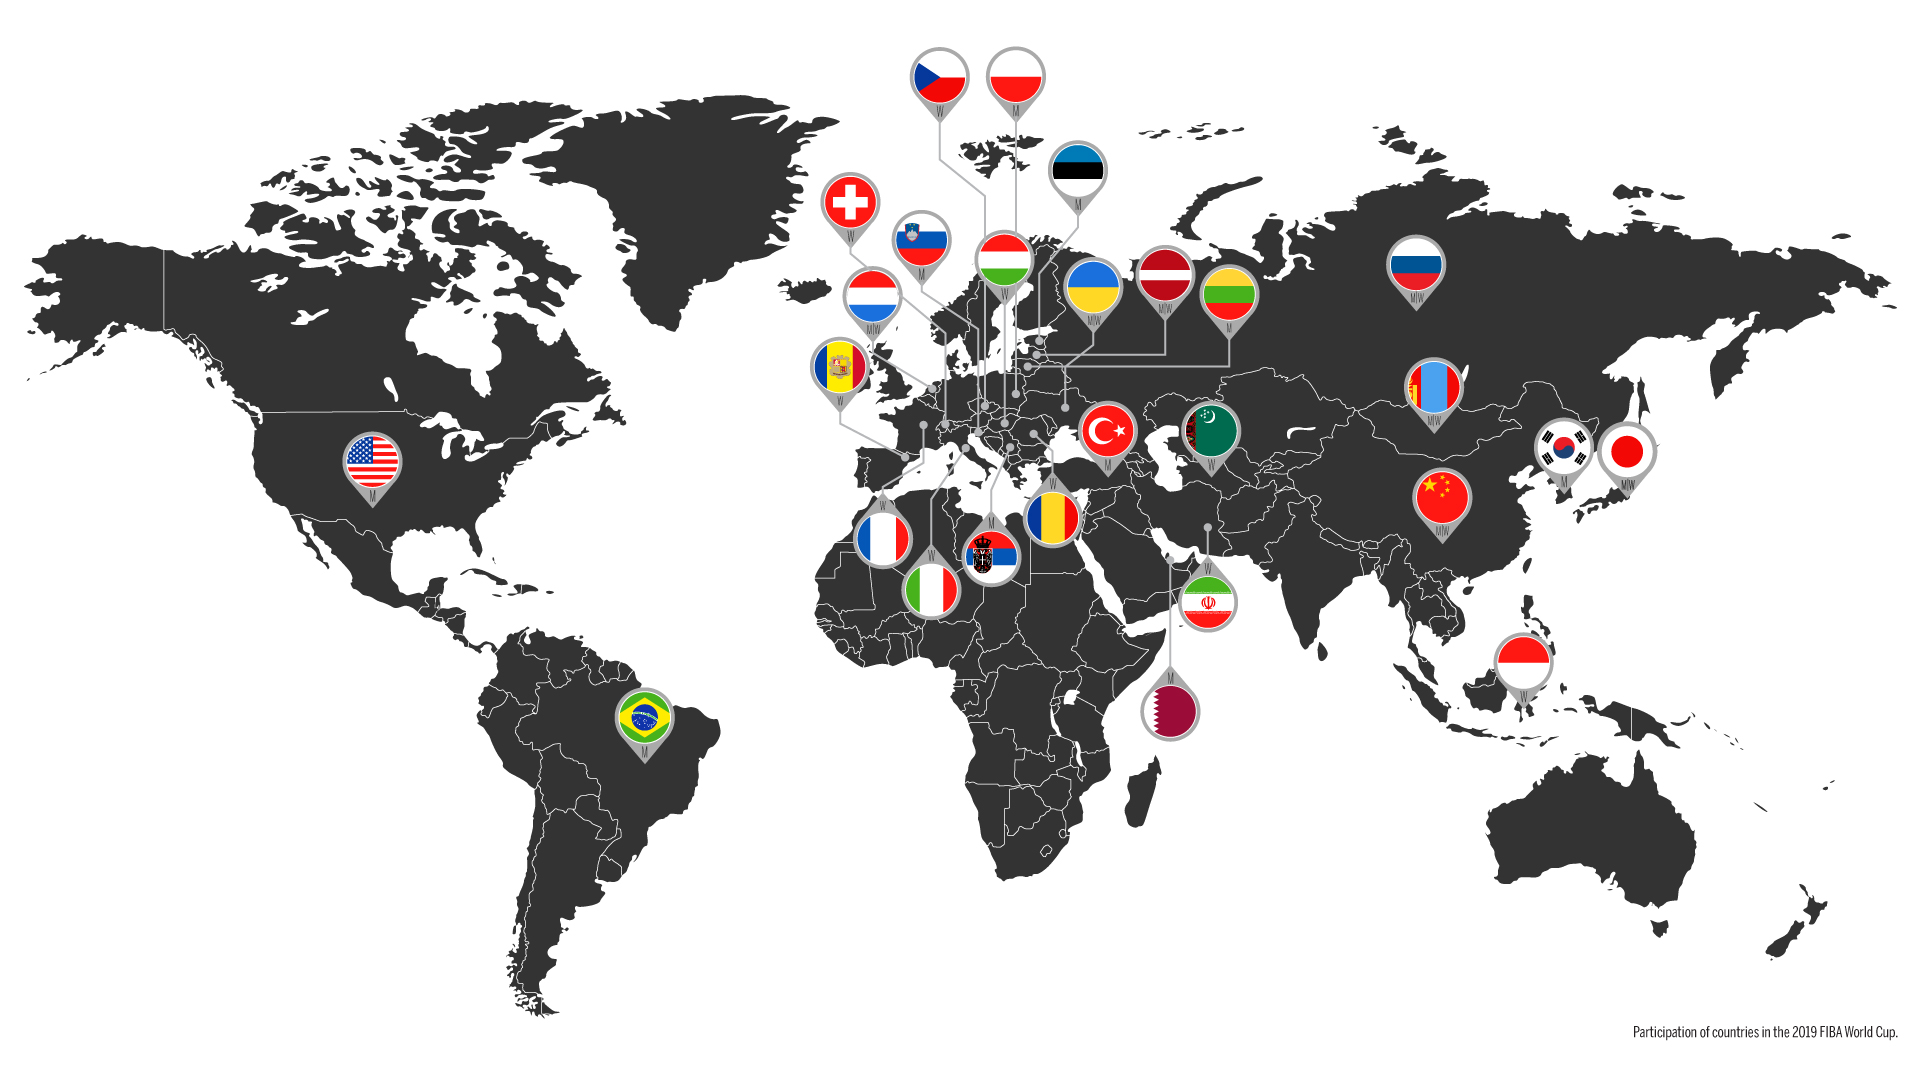 FIBA 3x3 World Map showing participating countries